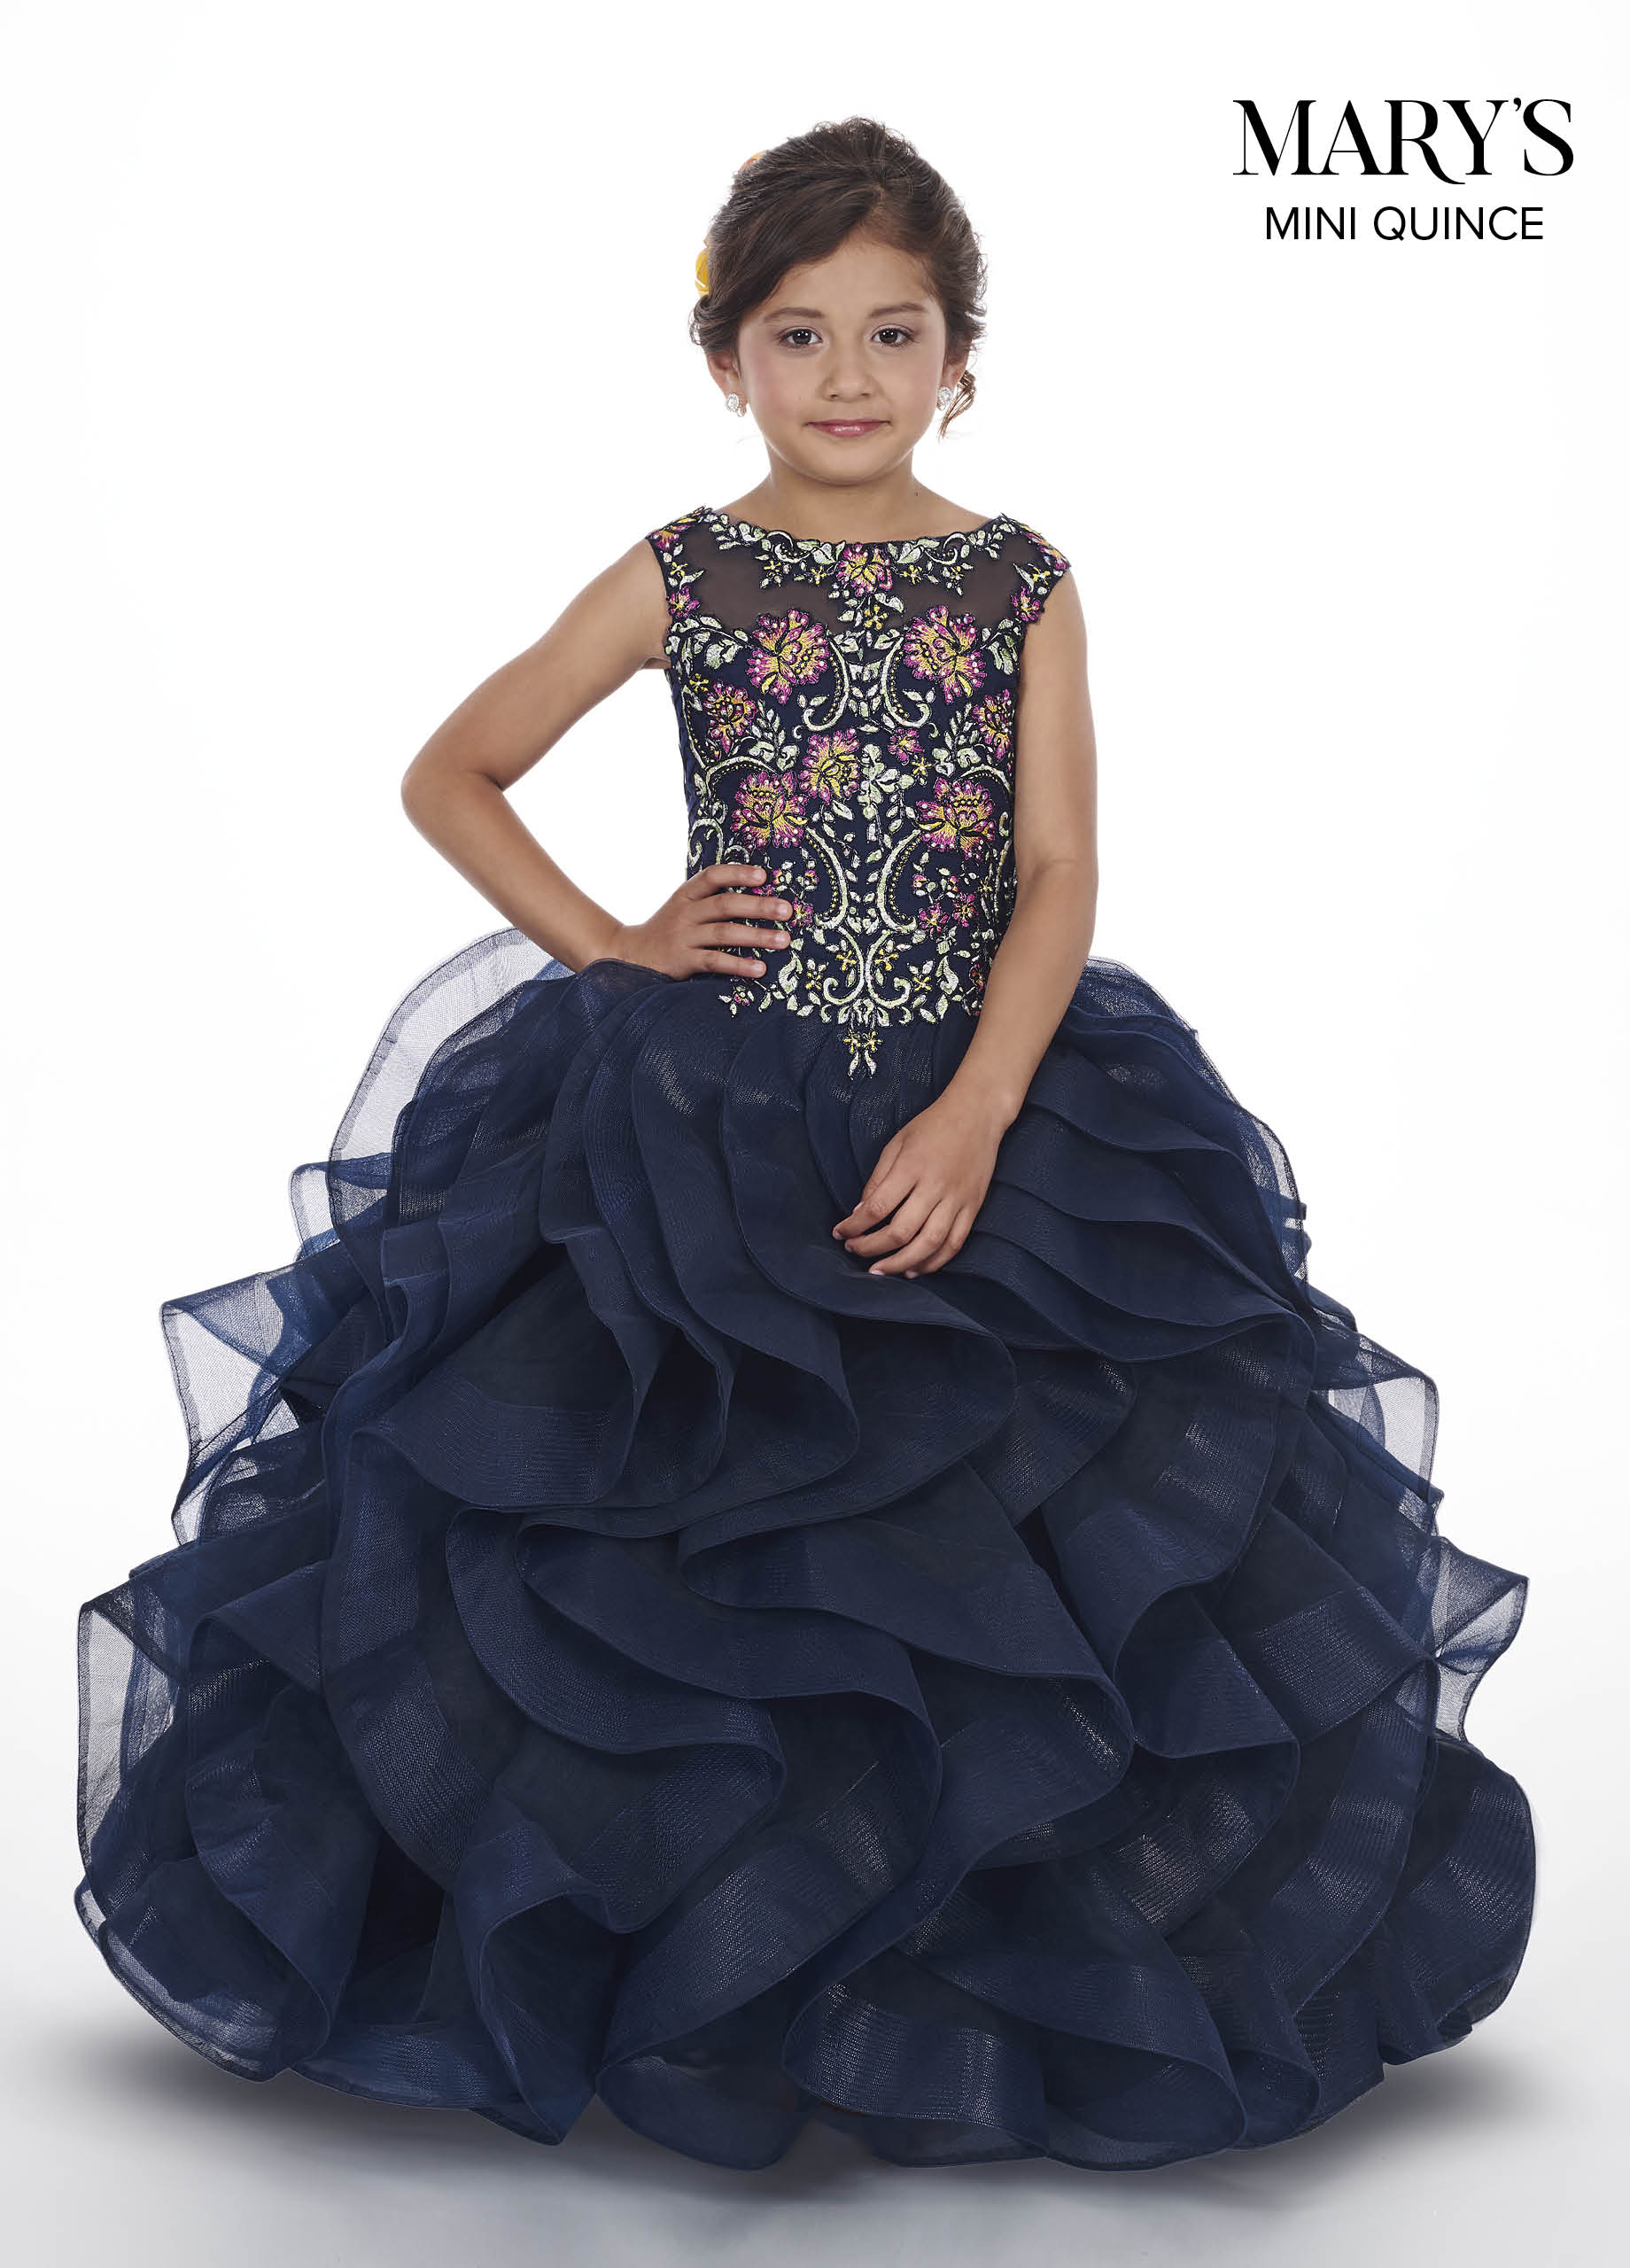 Little Quince Dresses | Mini Quince | Style - MQ4005